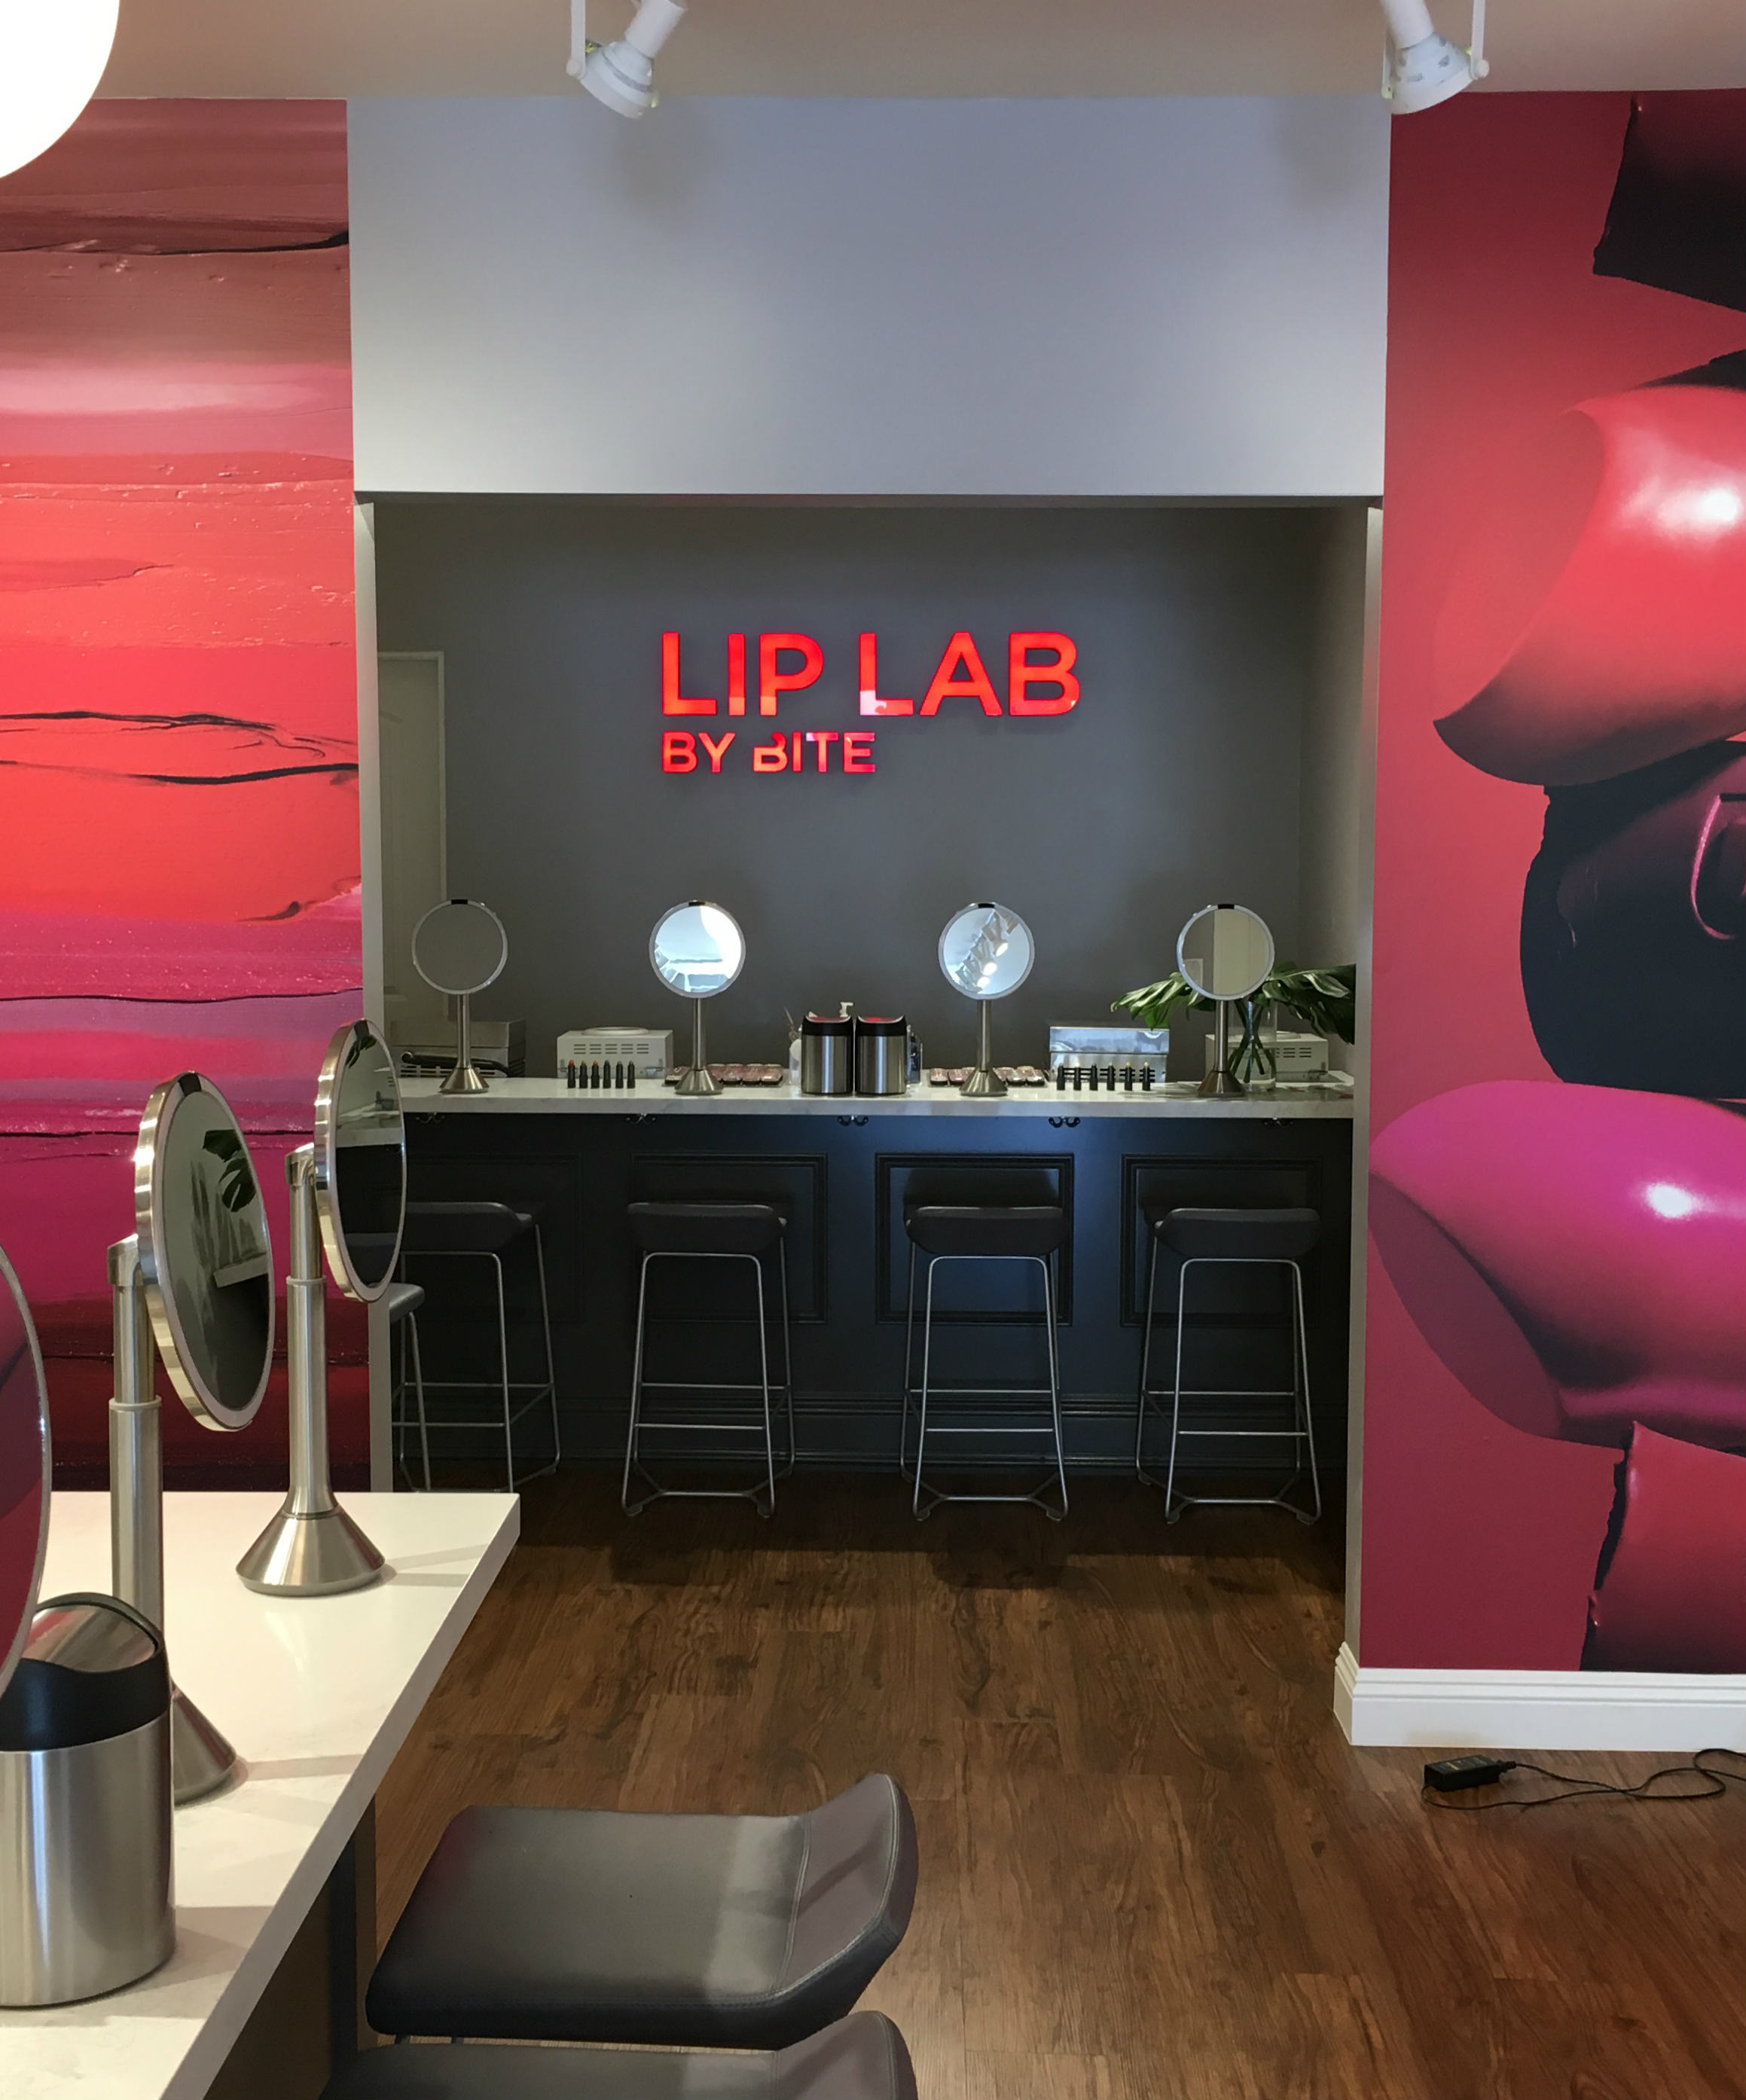 Services at Lip Lab by BITE